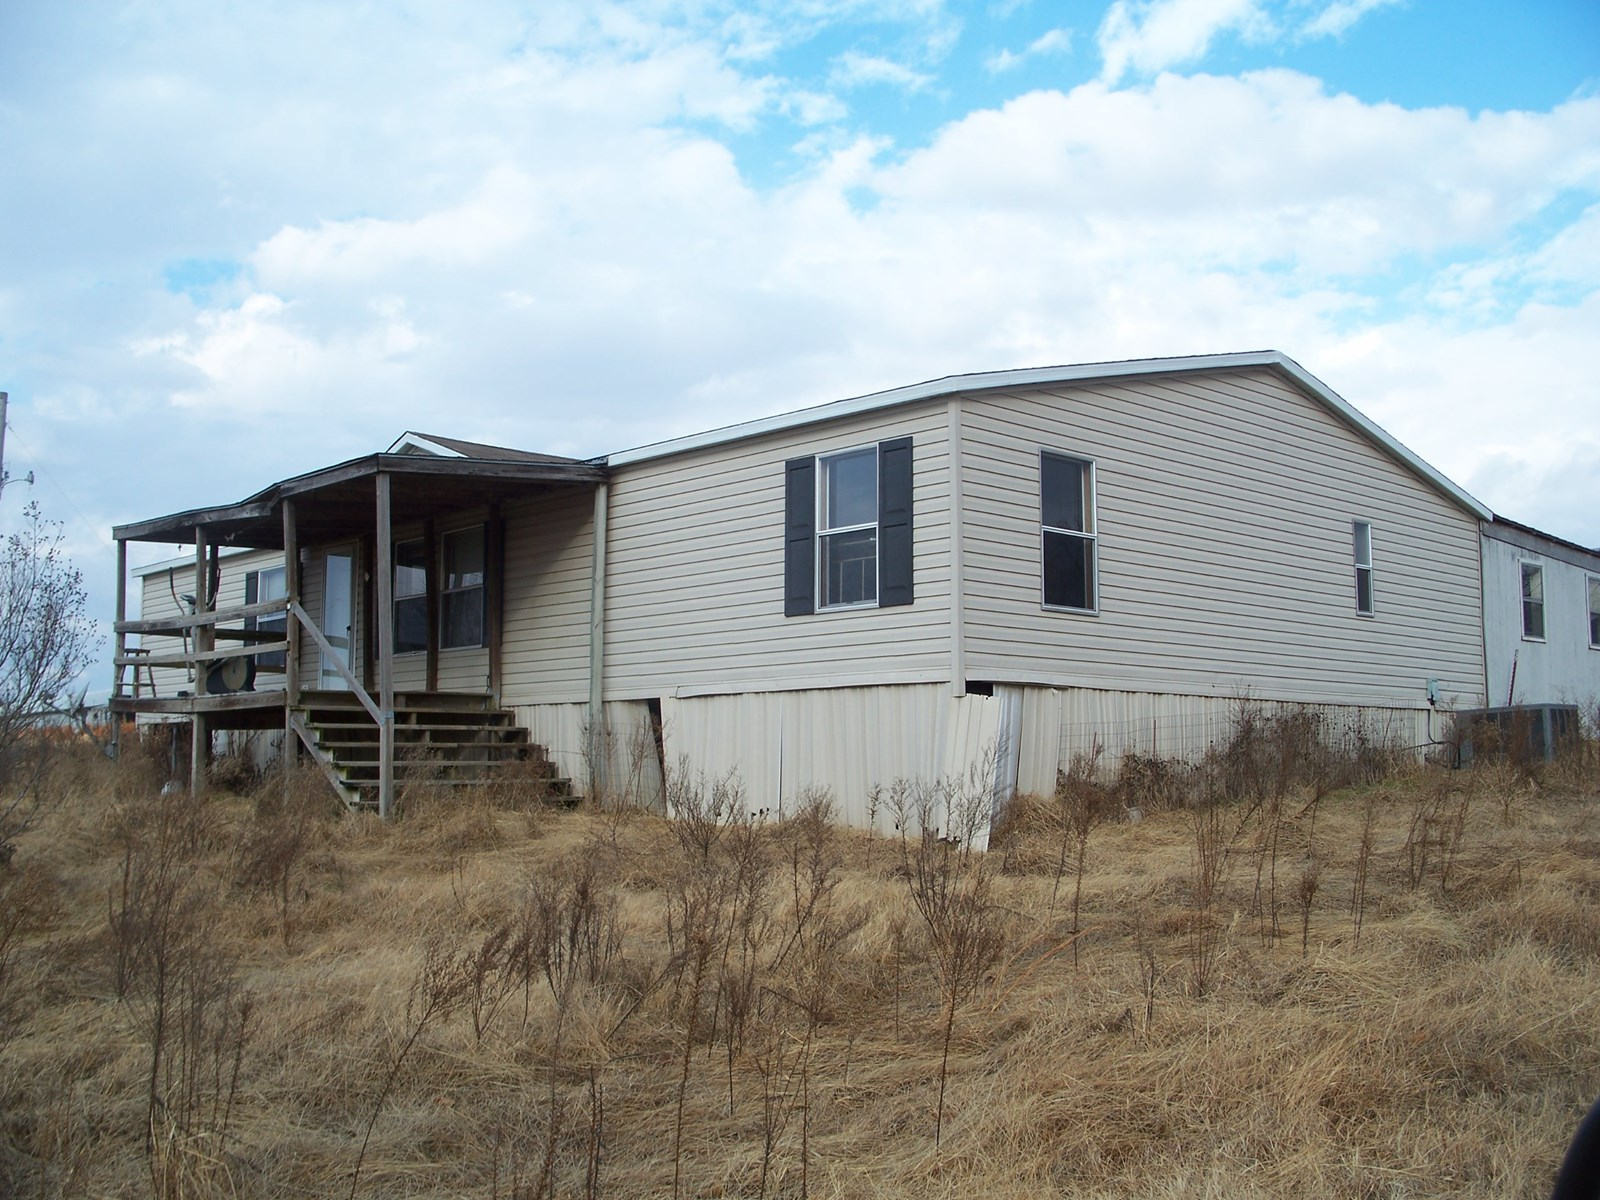 80 AC, REAL ESTATE AUCTION, 3 POULTRY HOUSES, HASKELL CO, OK